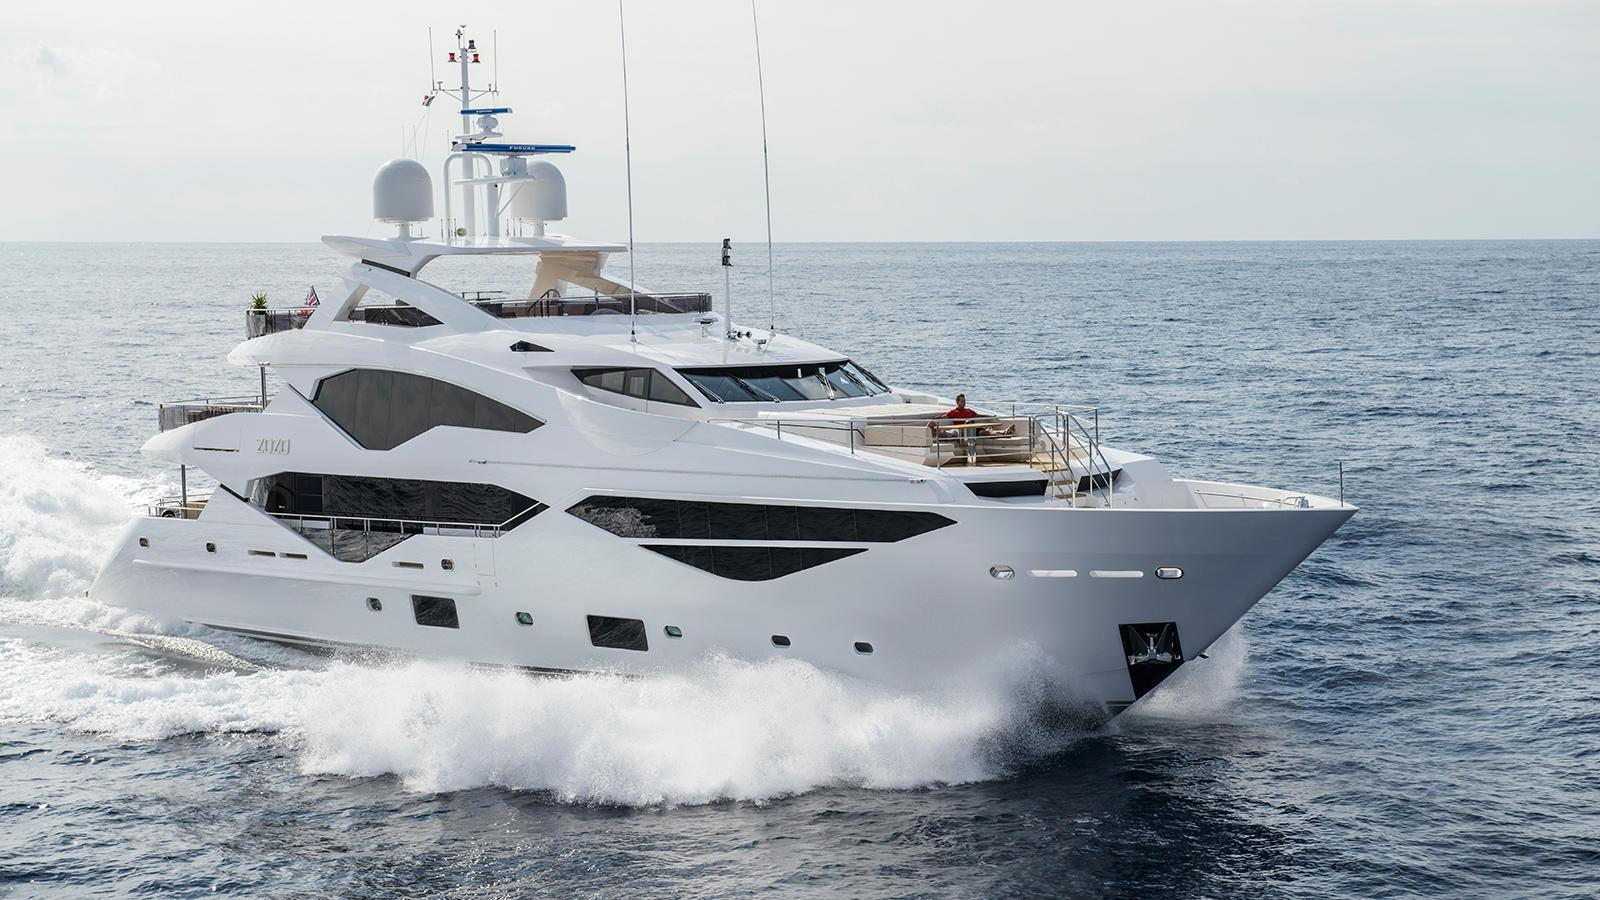 Sunseeker 131 motoryacht sunseeker 40m 2018 side profile sistership